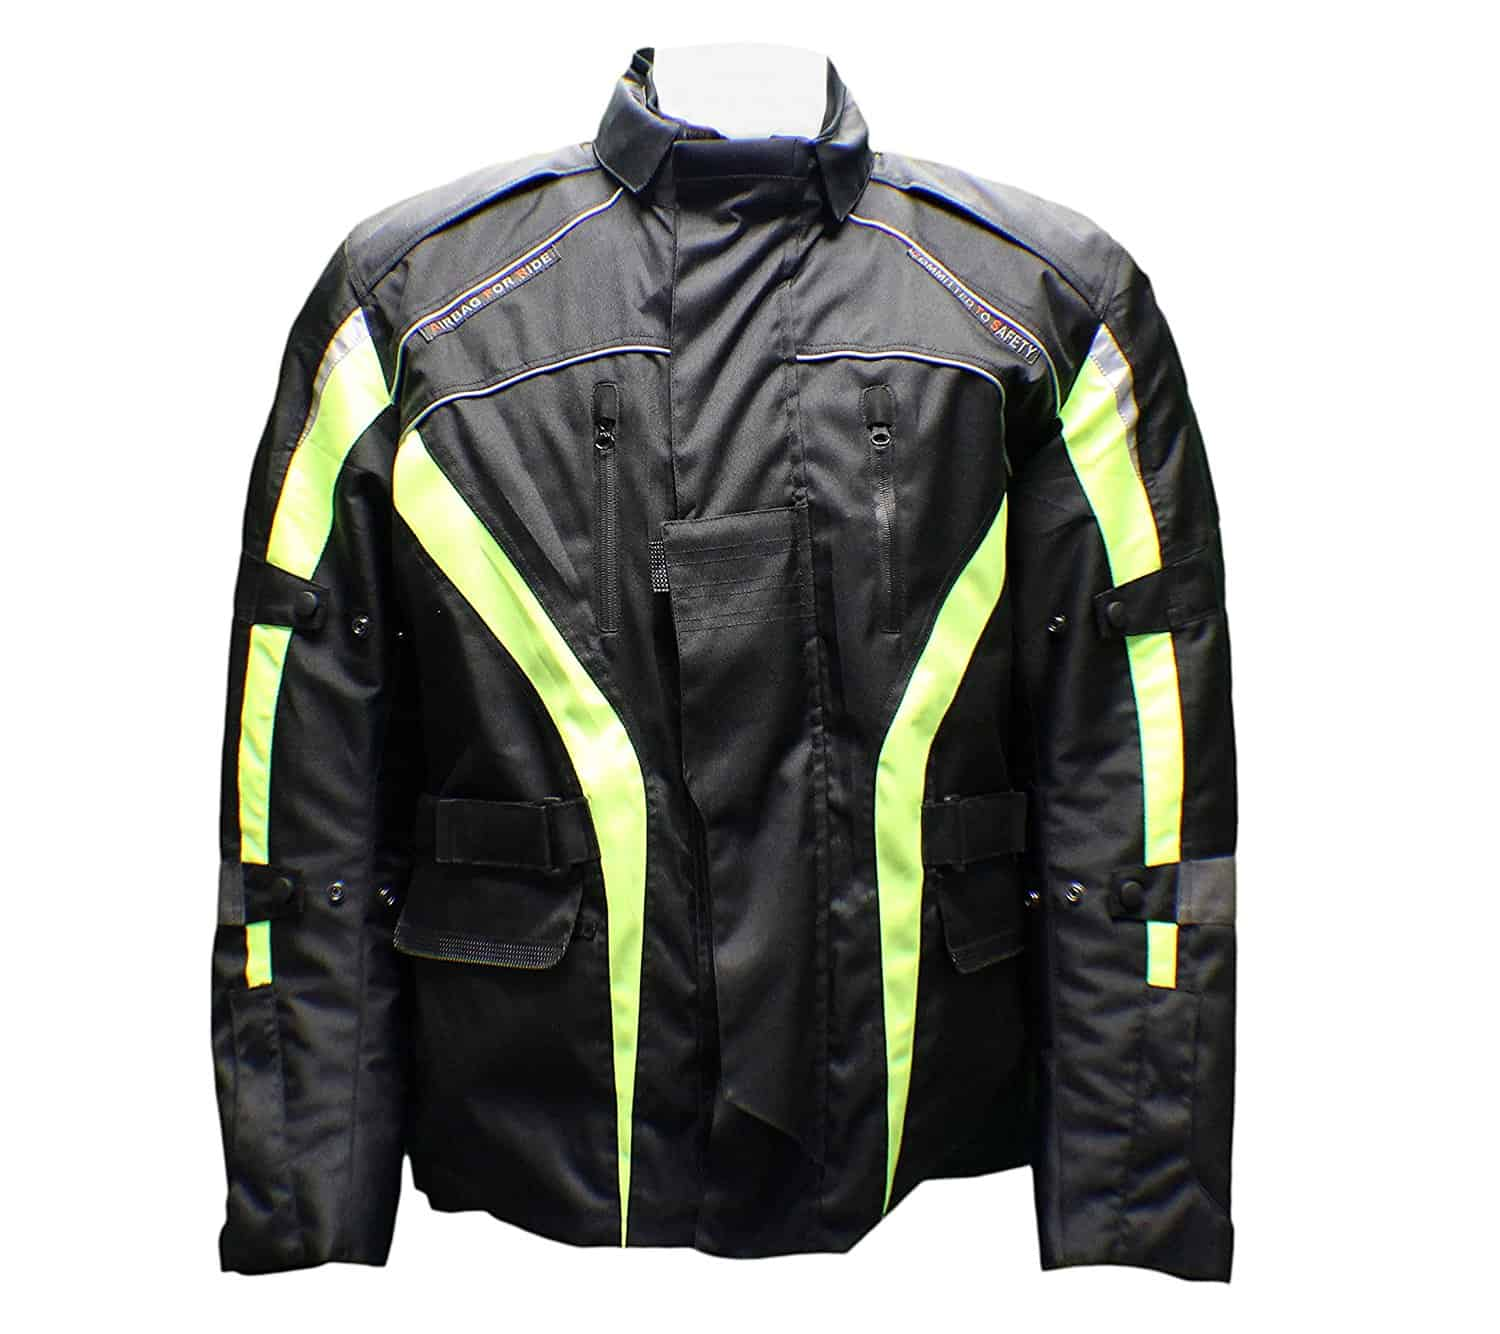 MotoAir R-970 Motorcycle Airbag Jacket